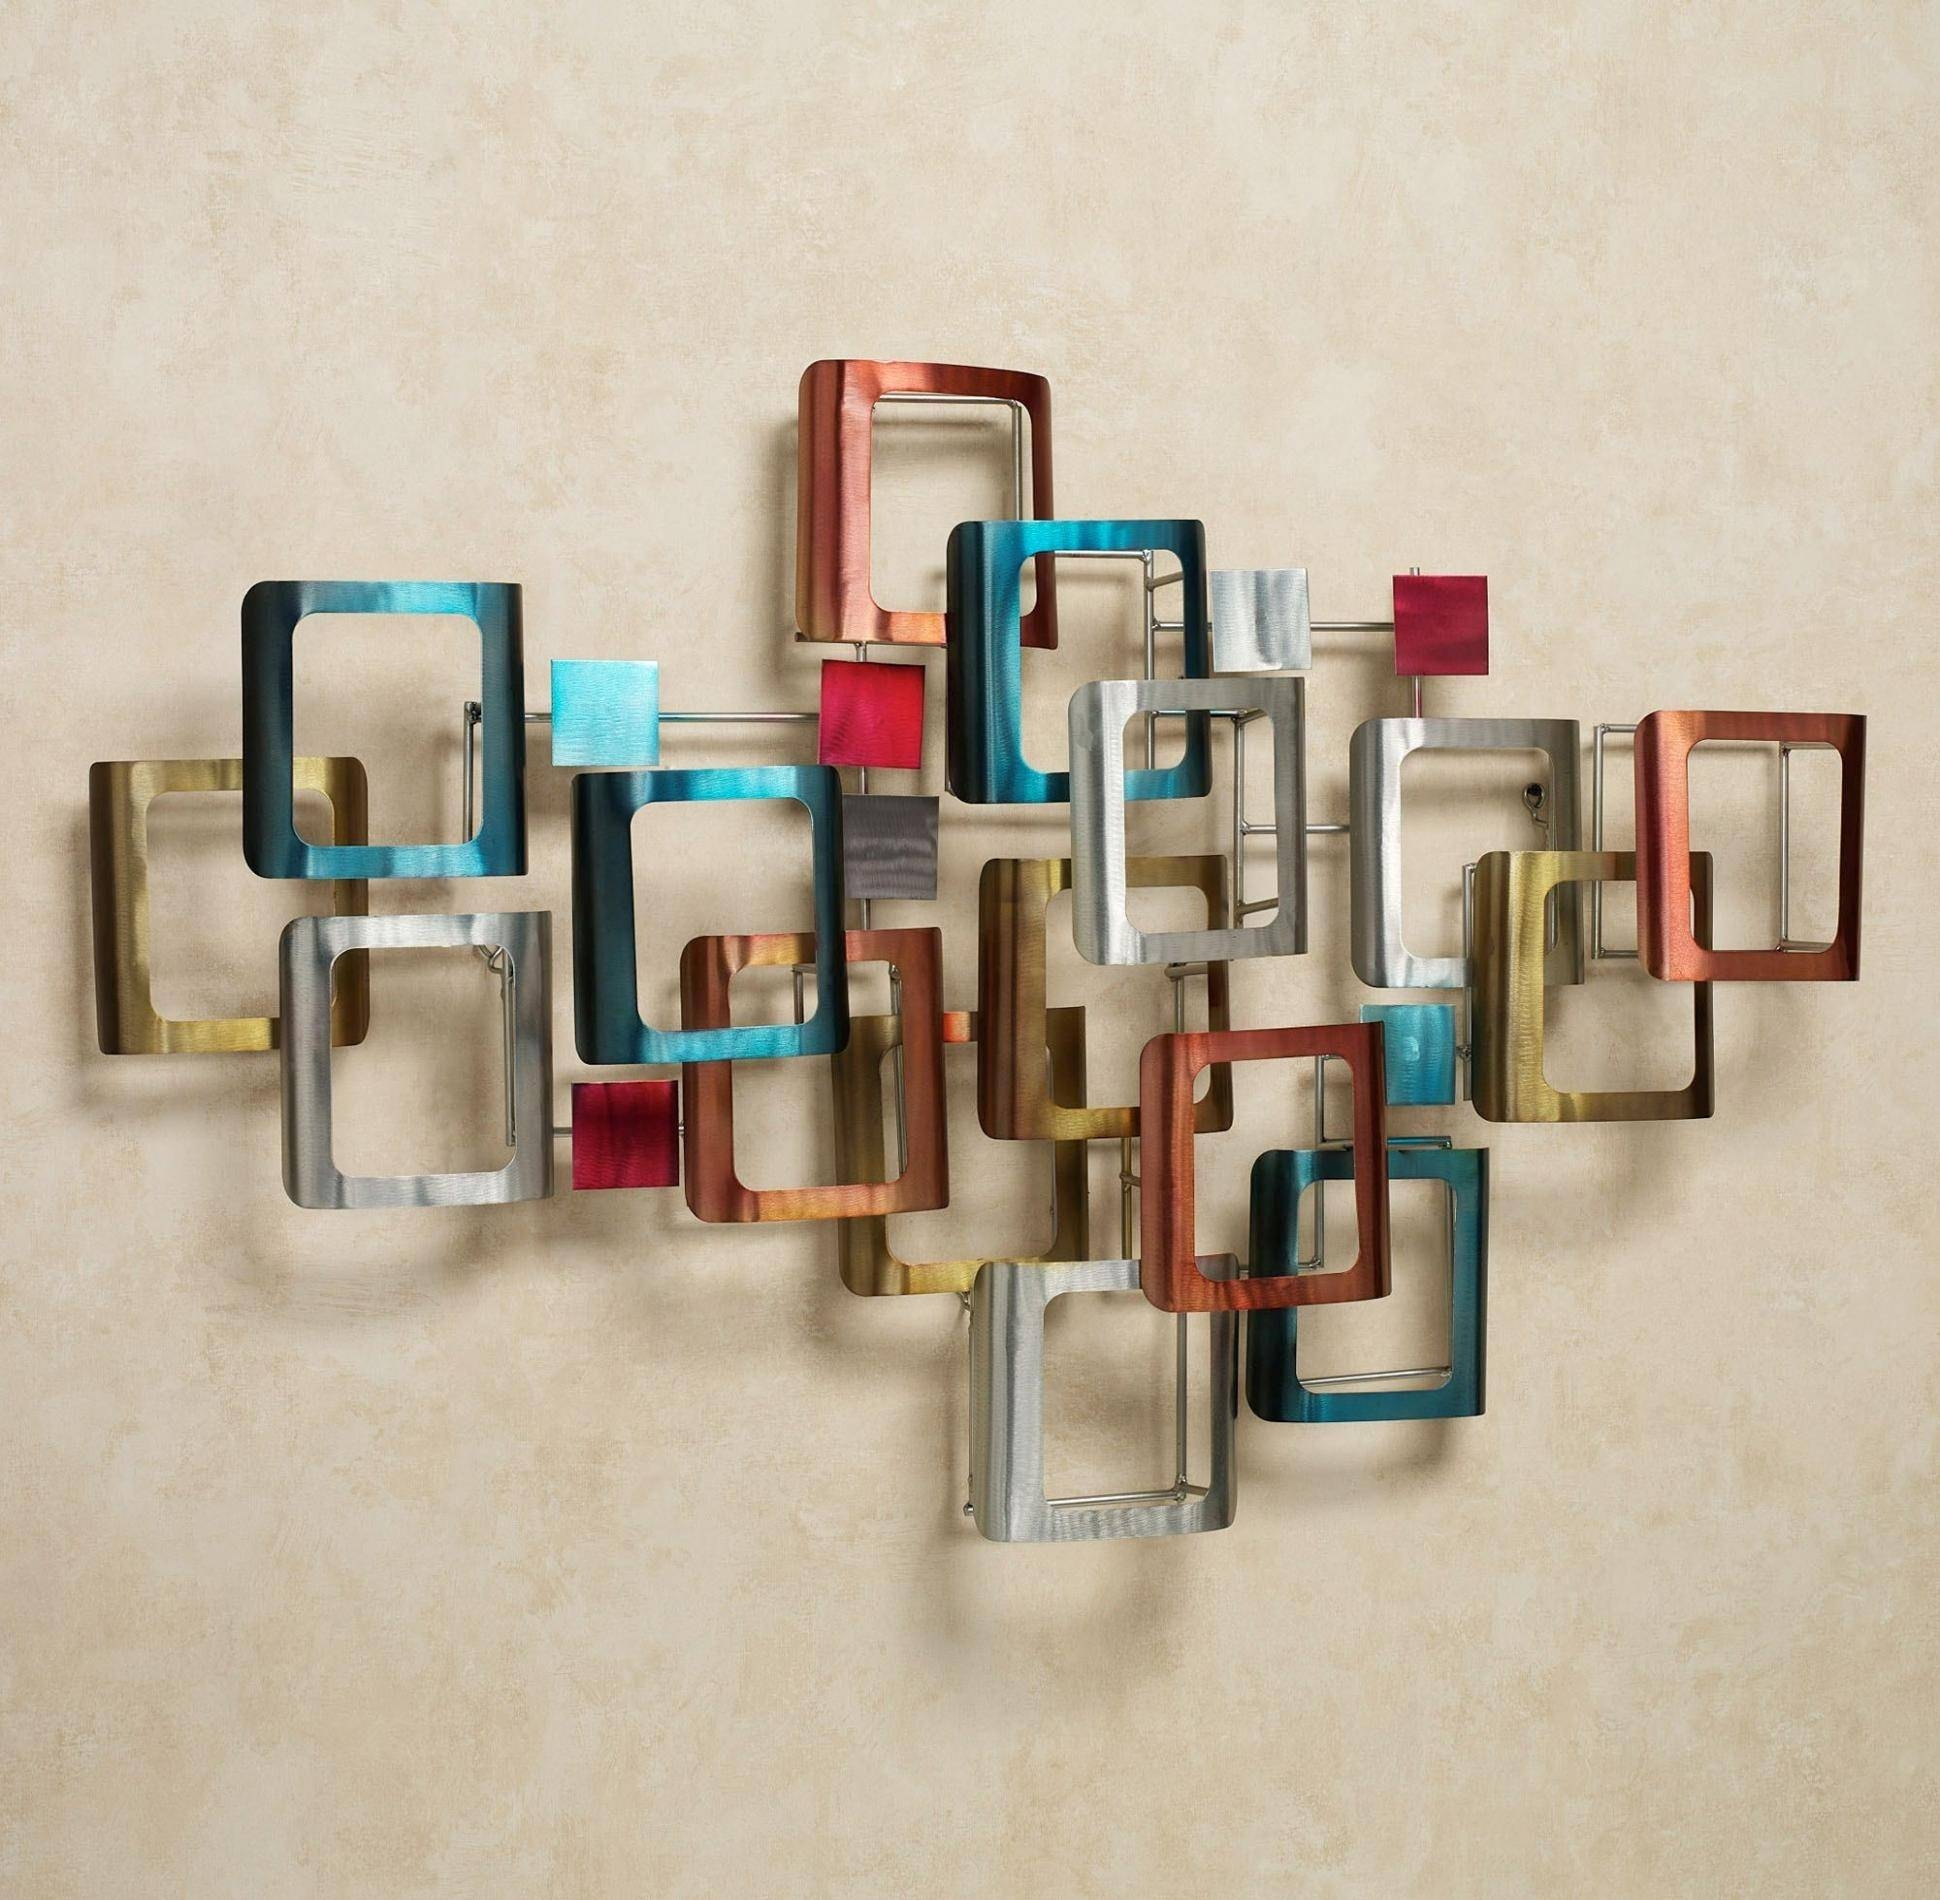 20 Photo Of Contemporary Metal Wall Art Throughout Most Up To Date Contemporary Metal Wall Art Flowers (Gallery 12 of 20)